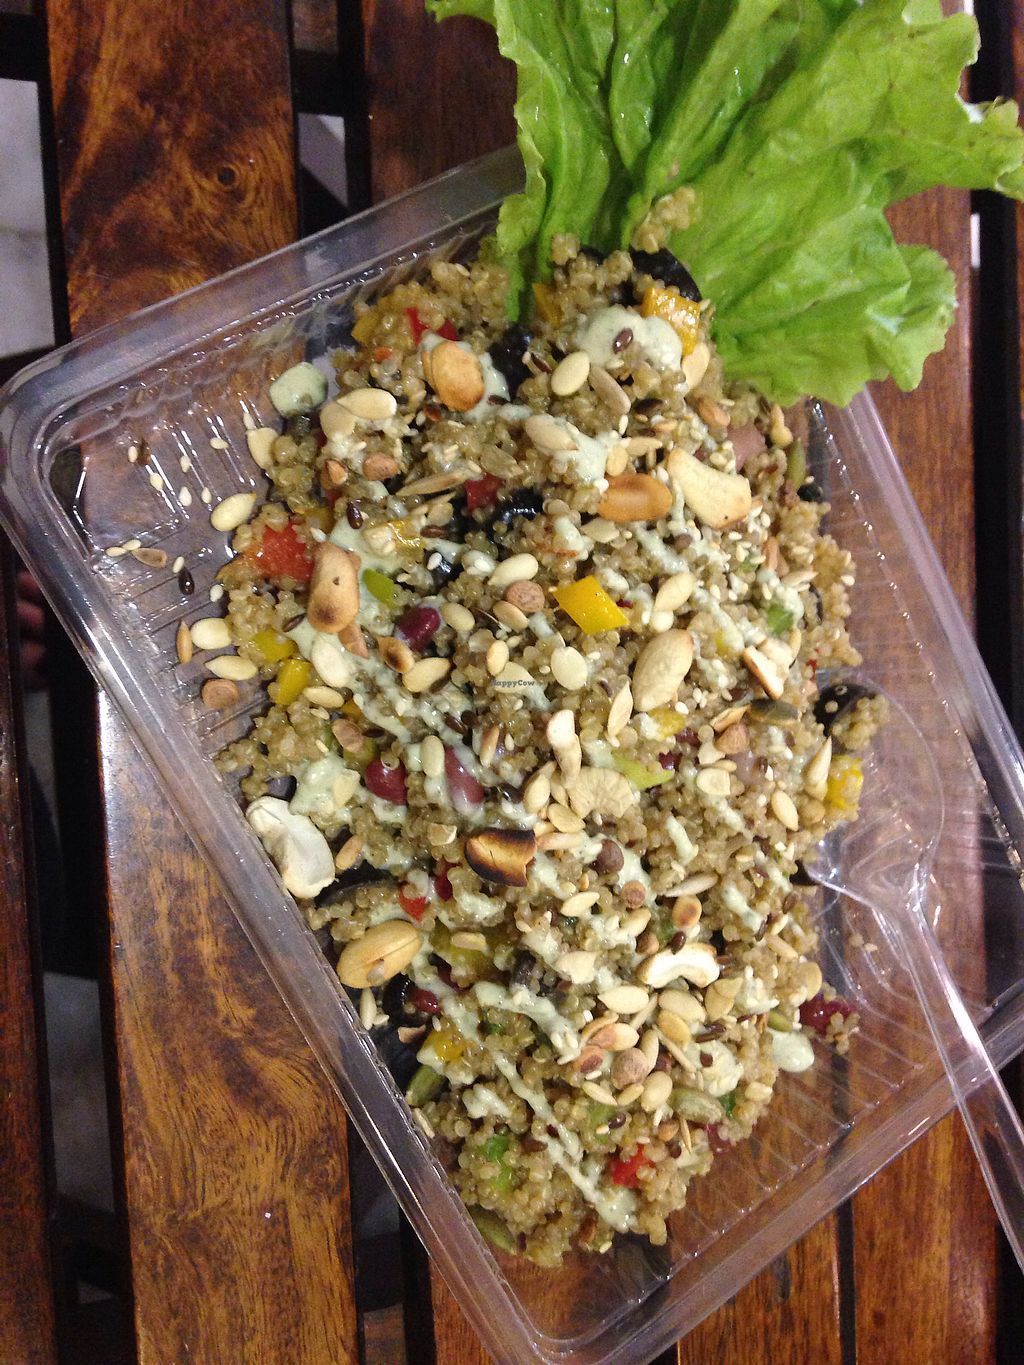 """Photo of Cafe Pranah  by <a href=""""/members/profile/SophieCarolyn"""">SophieCarolyn</a> <br/>Quinoa salad  <br/> March 30, 2018  - <a href='/contact/abuse/image/116070/378152'>Report</a>"""